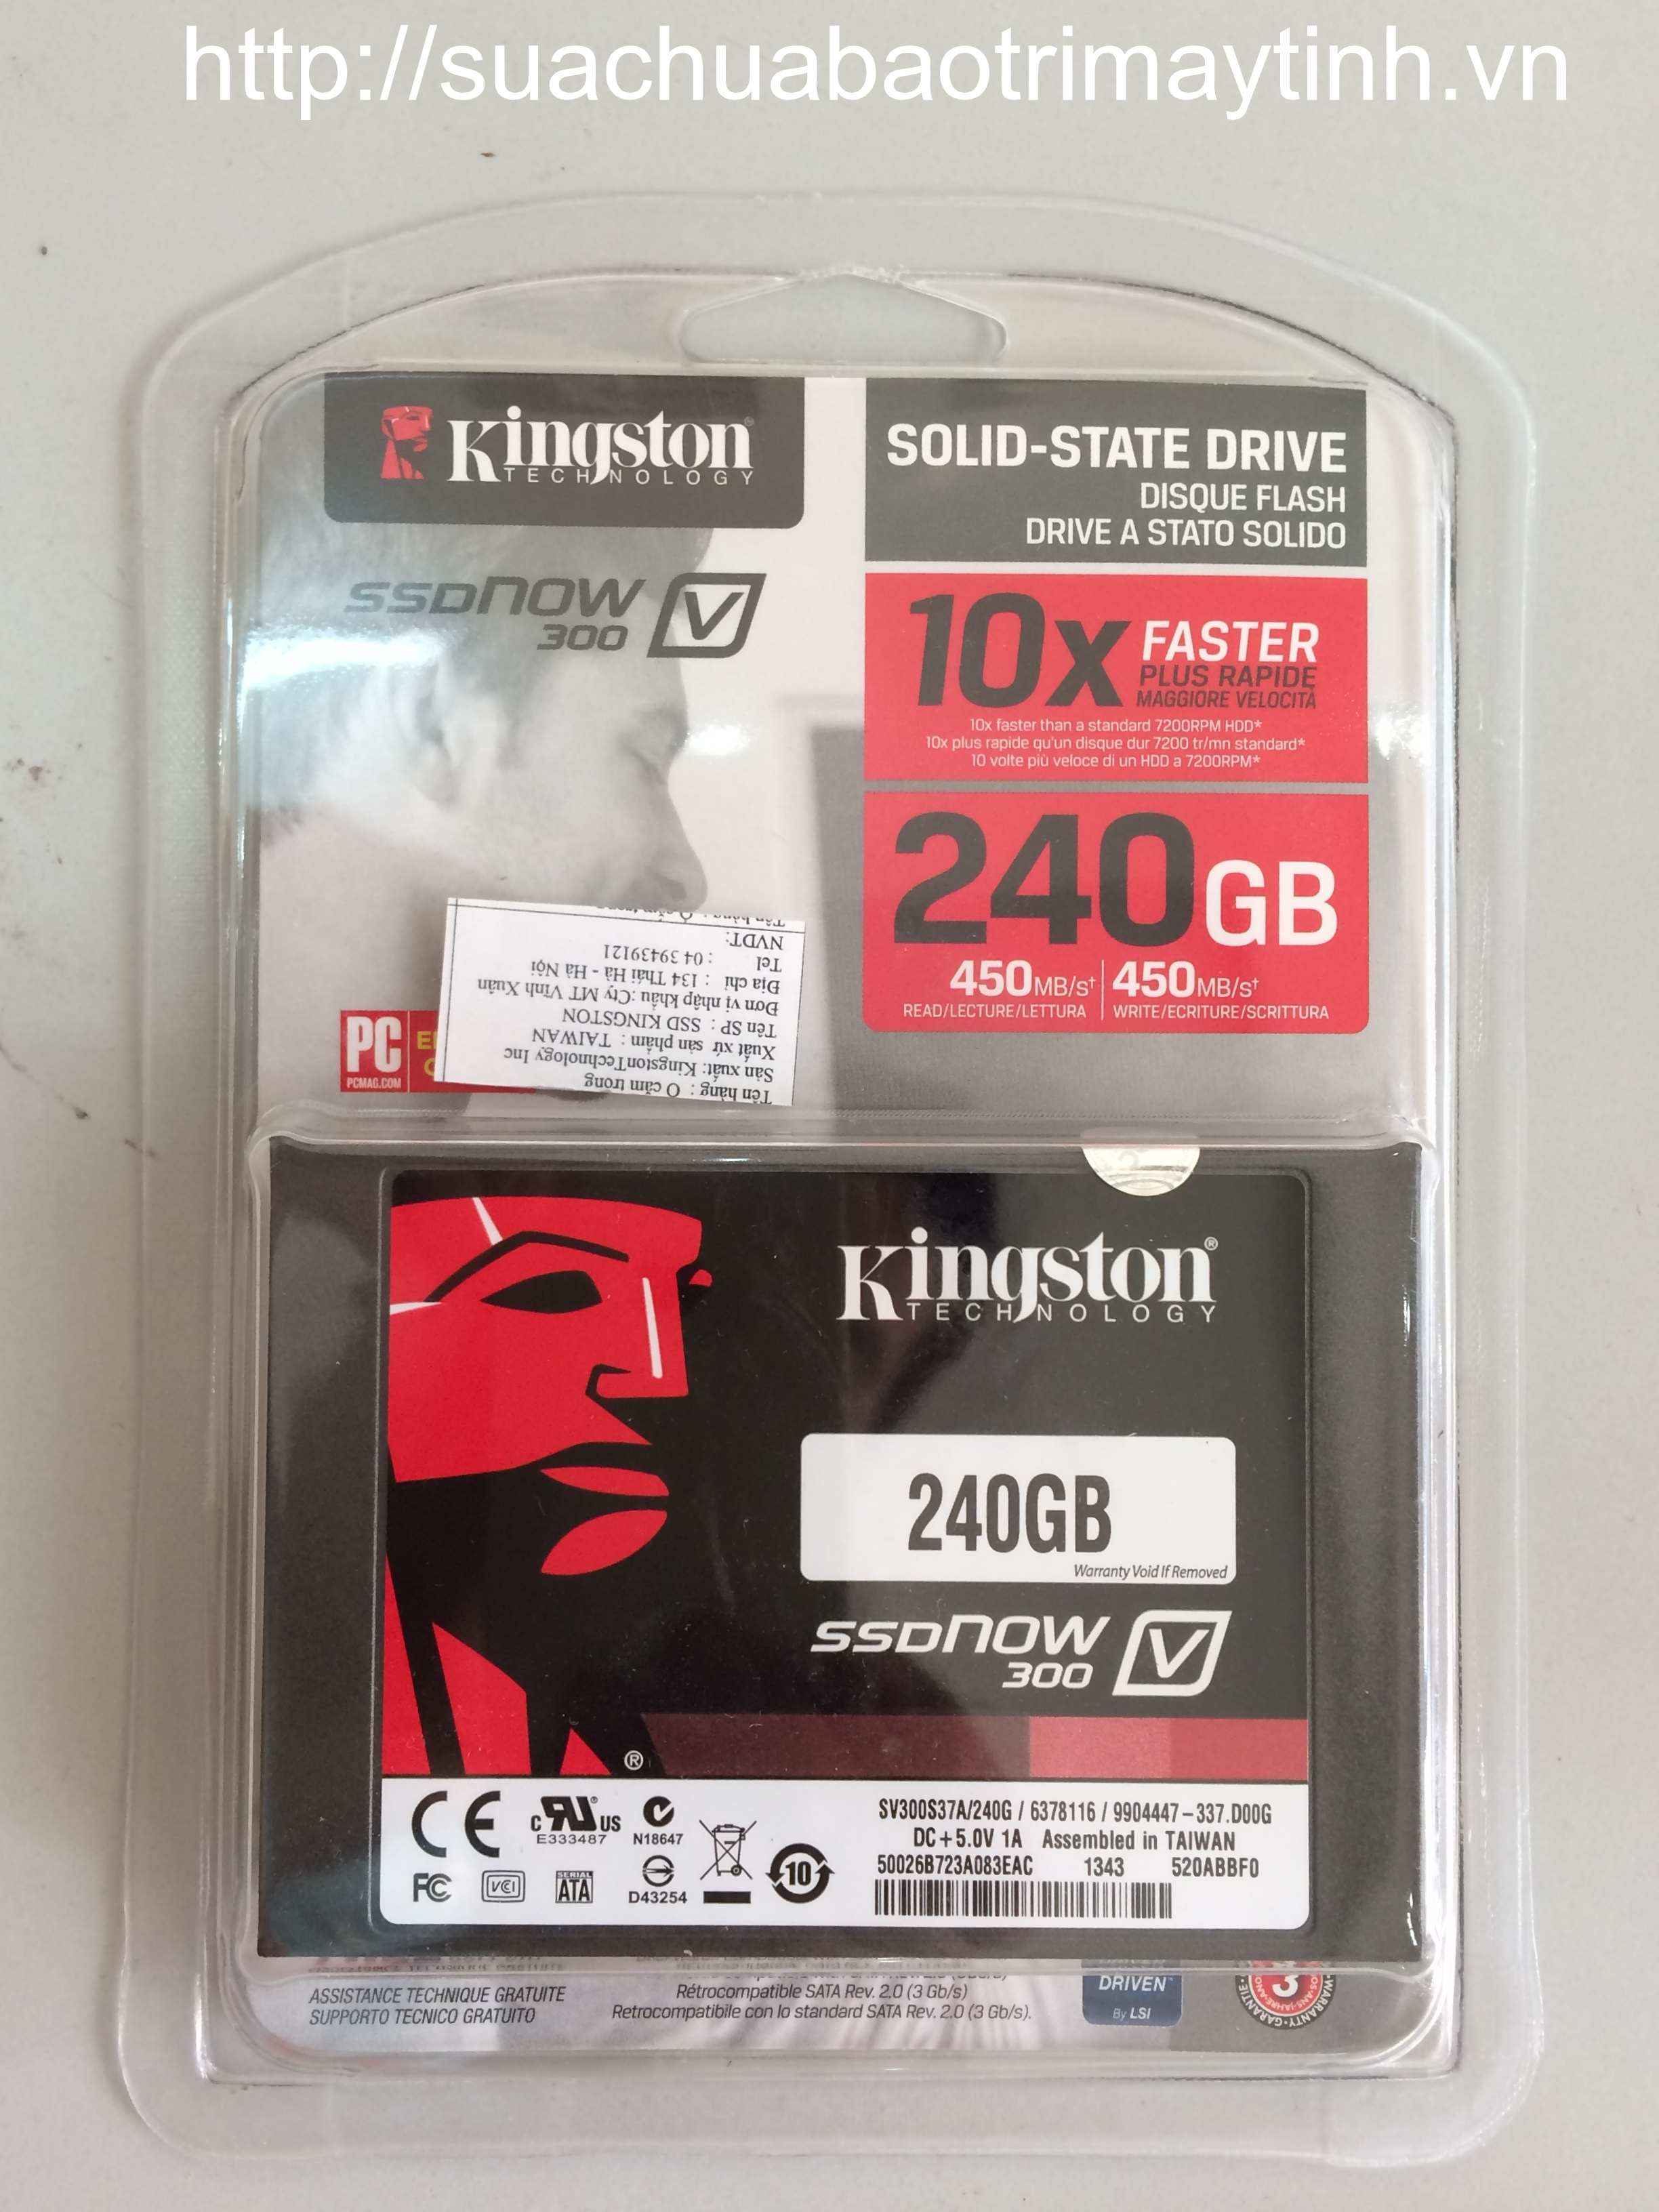 Ổ cứng SSD 240GB Kingston 300V